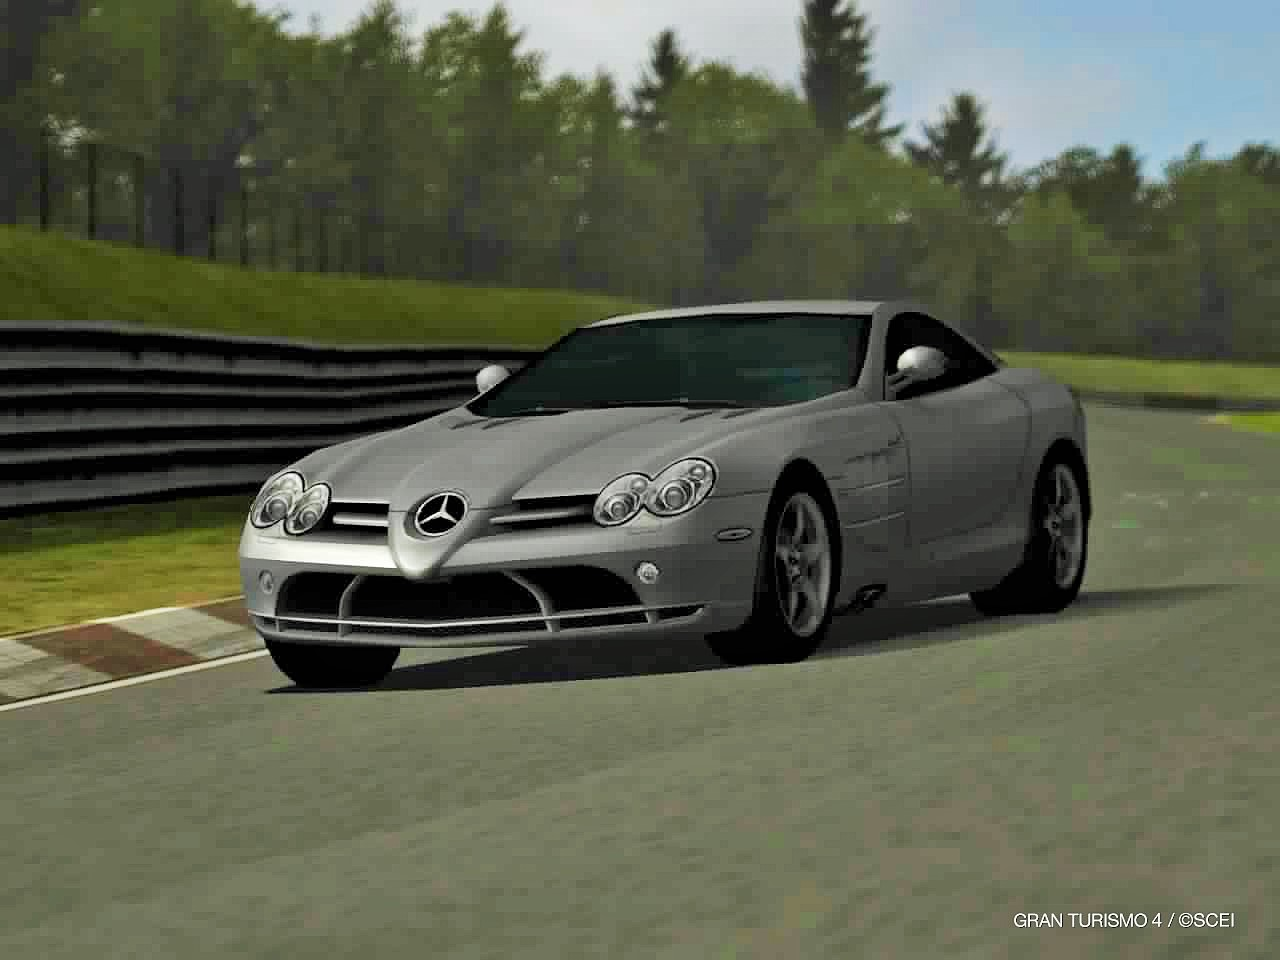 It Is Not The First Mercedes Benz SLR McLaren On This Blog As There Is Also  This Mercedes Benz SLR McLaren But It Is The 2009 Model And With A 19 Inch  Wheel ...